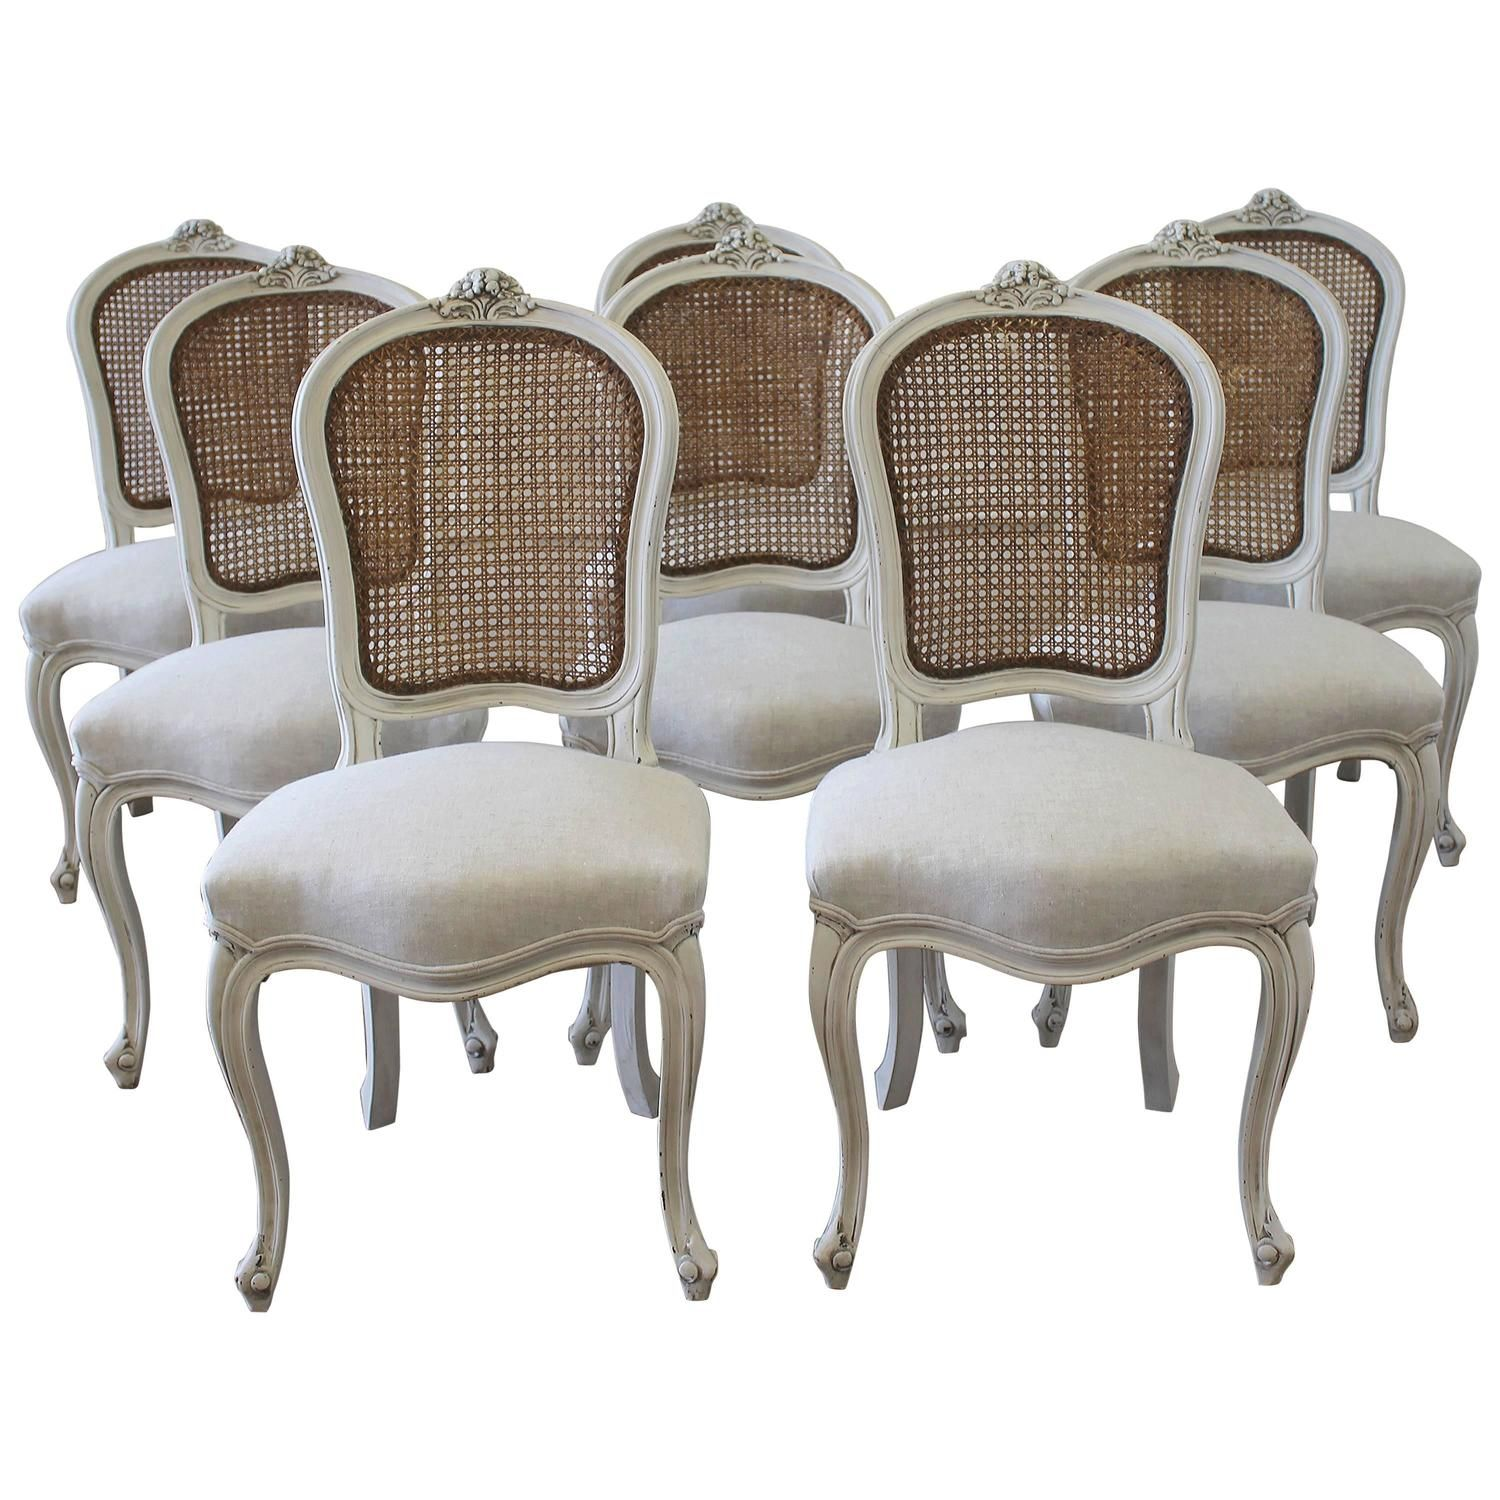 1930 Cane Back Sofa Snuggle Argos Antique French Dining Chairs Room Ideas